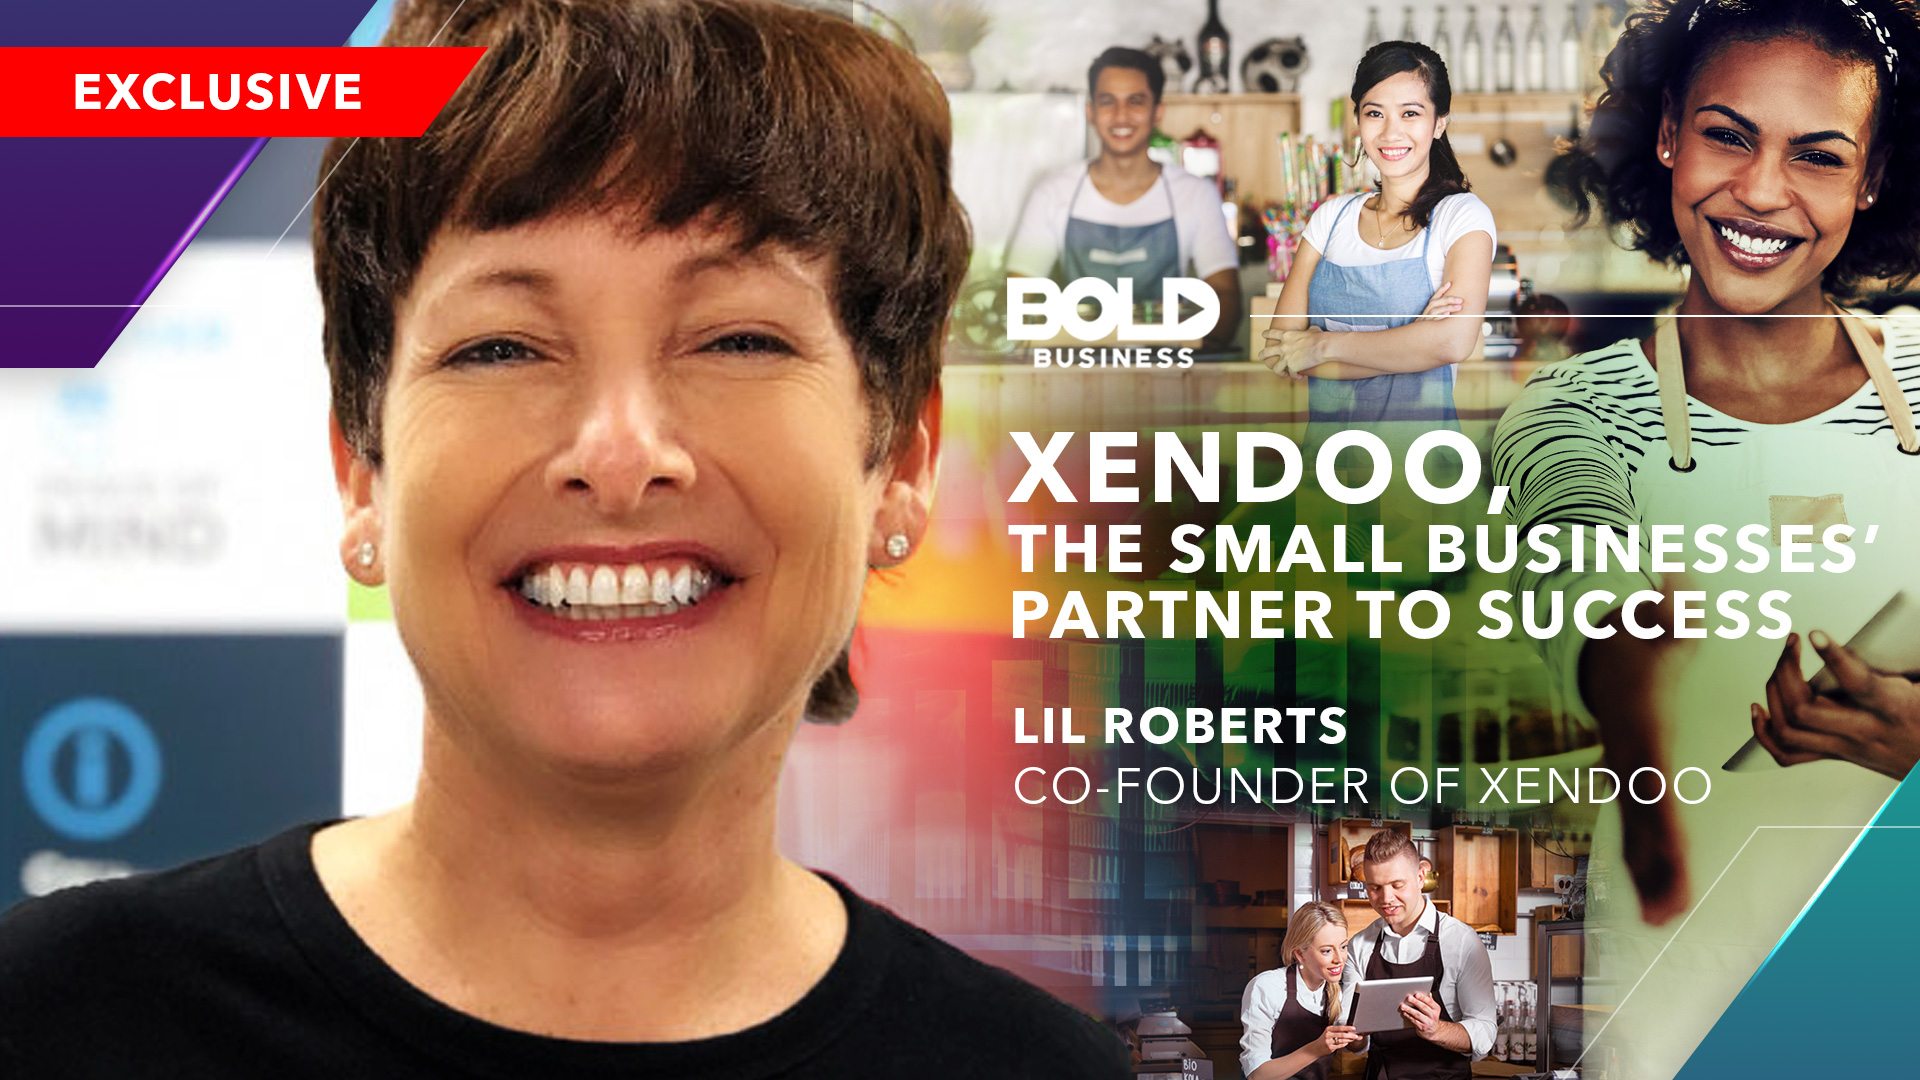 Xendoo, The Small Businesses' Partner to Financial Success